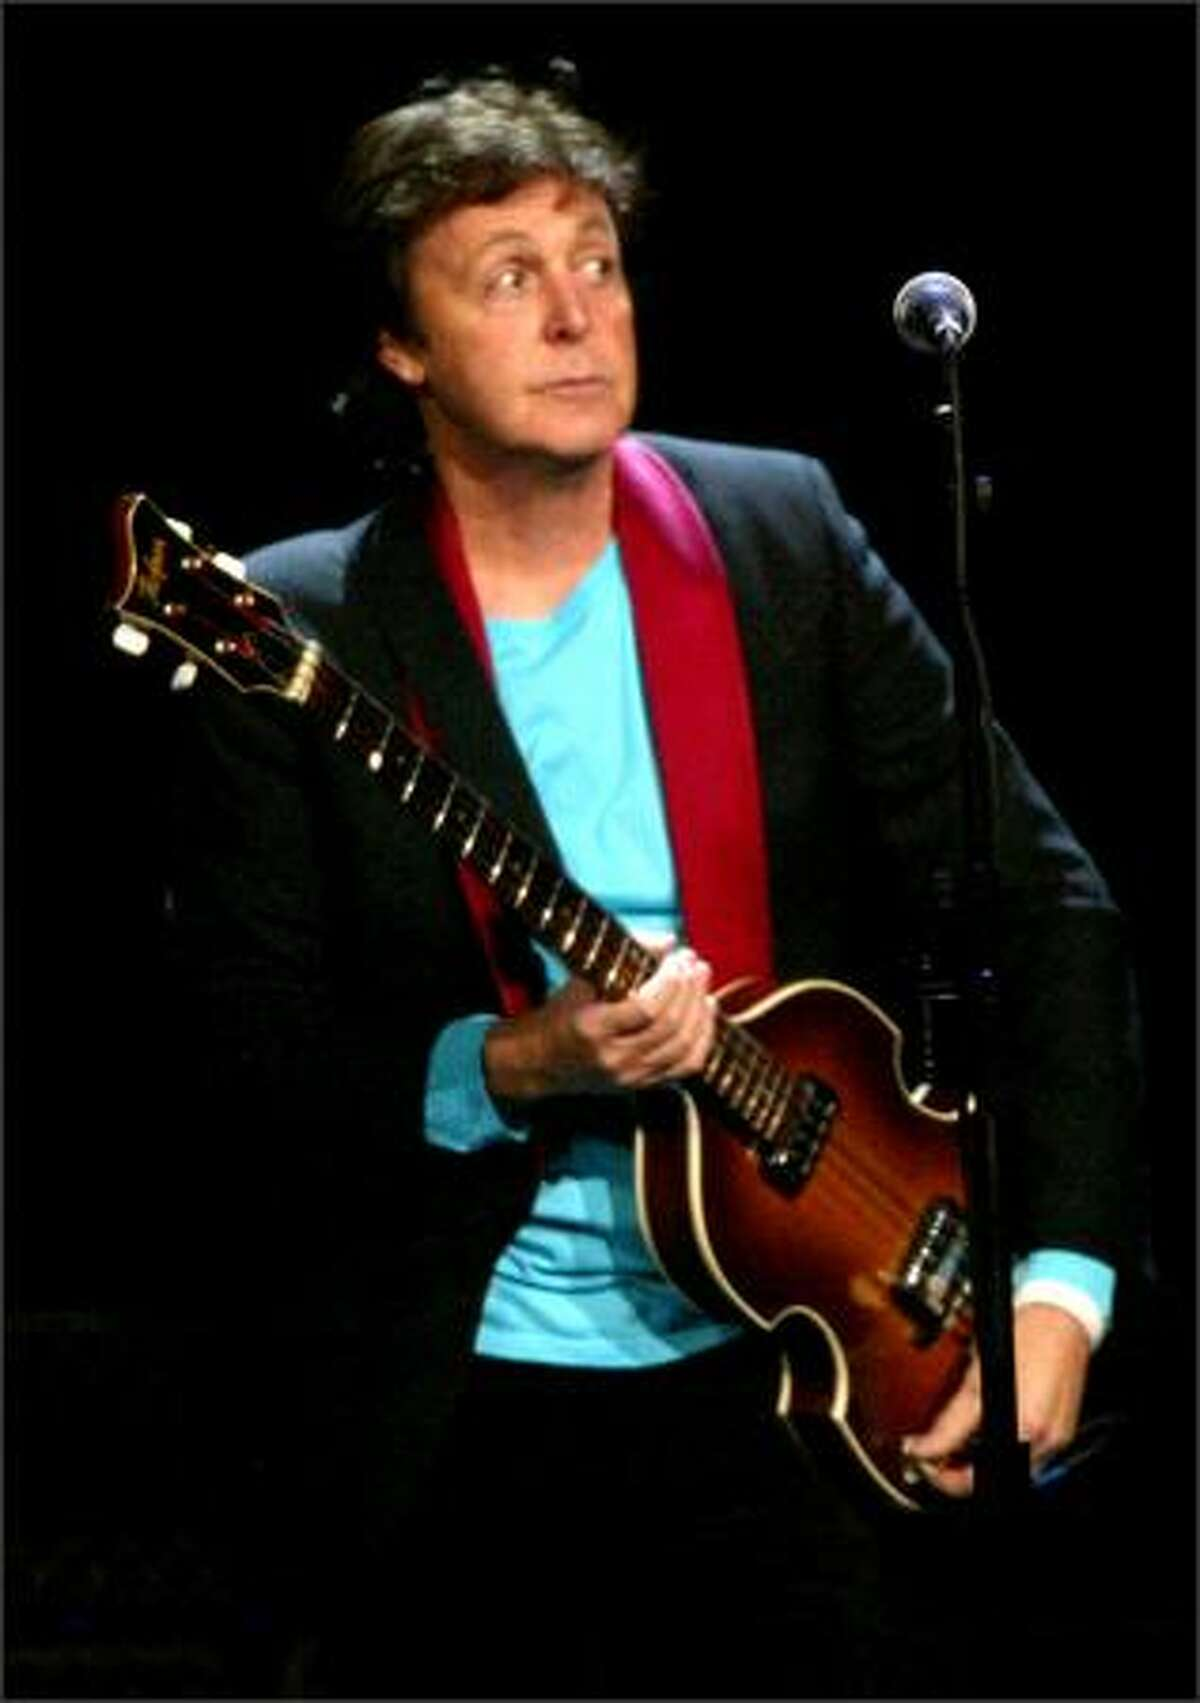 Paul McCartney adjusts his bass as he and his band perform.